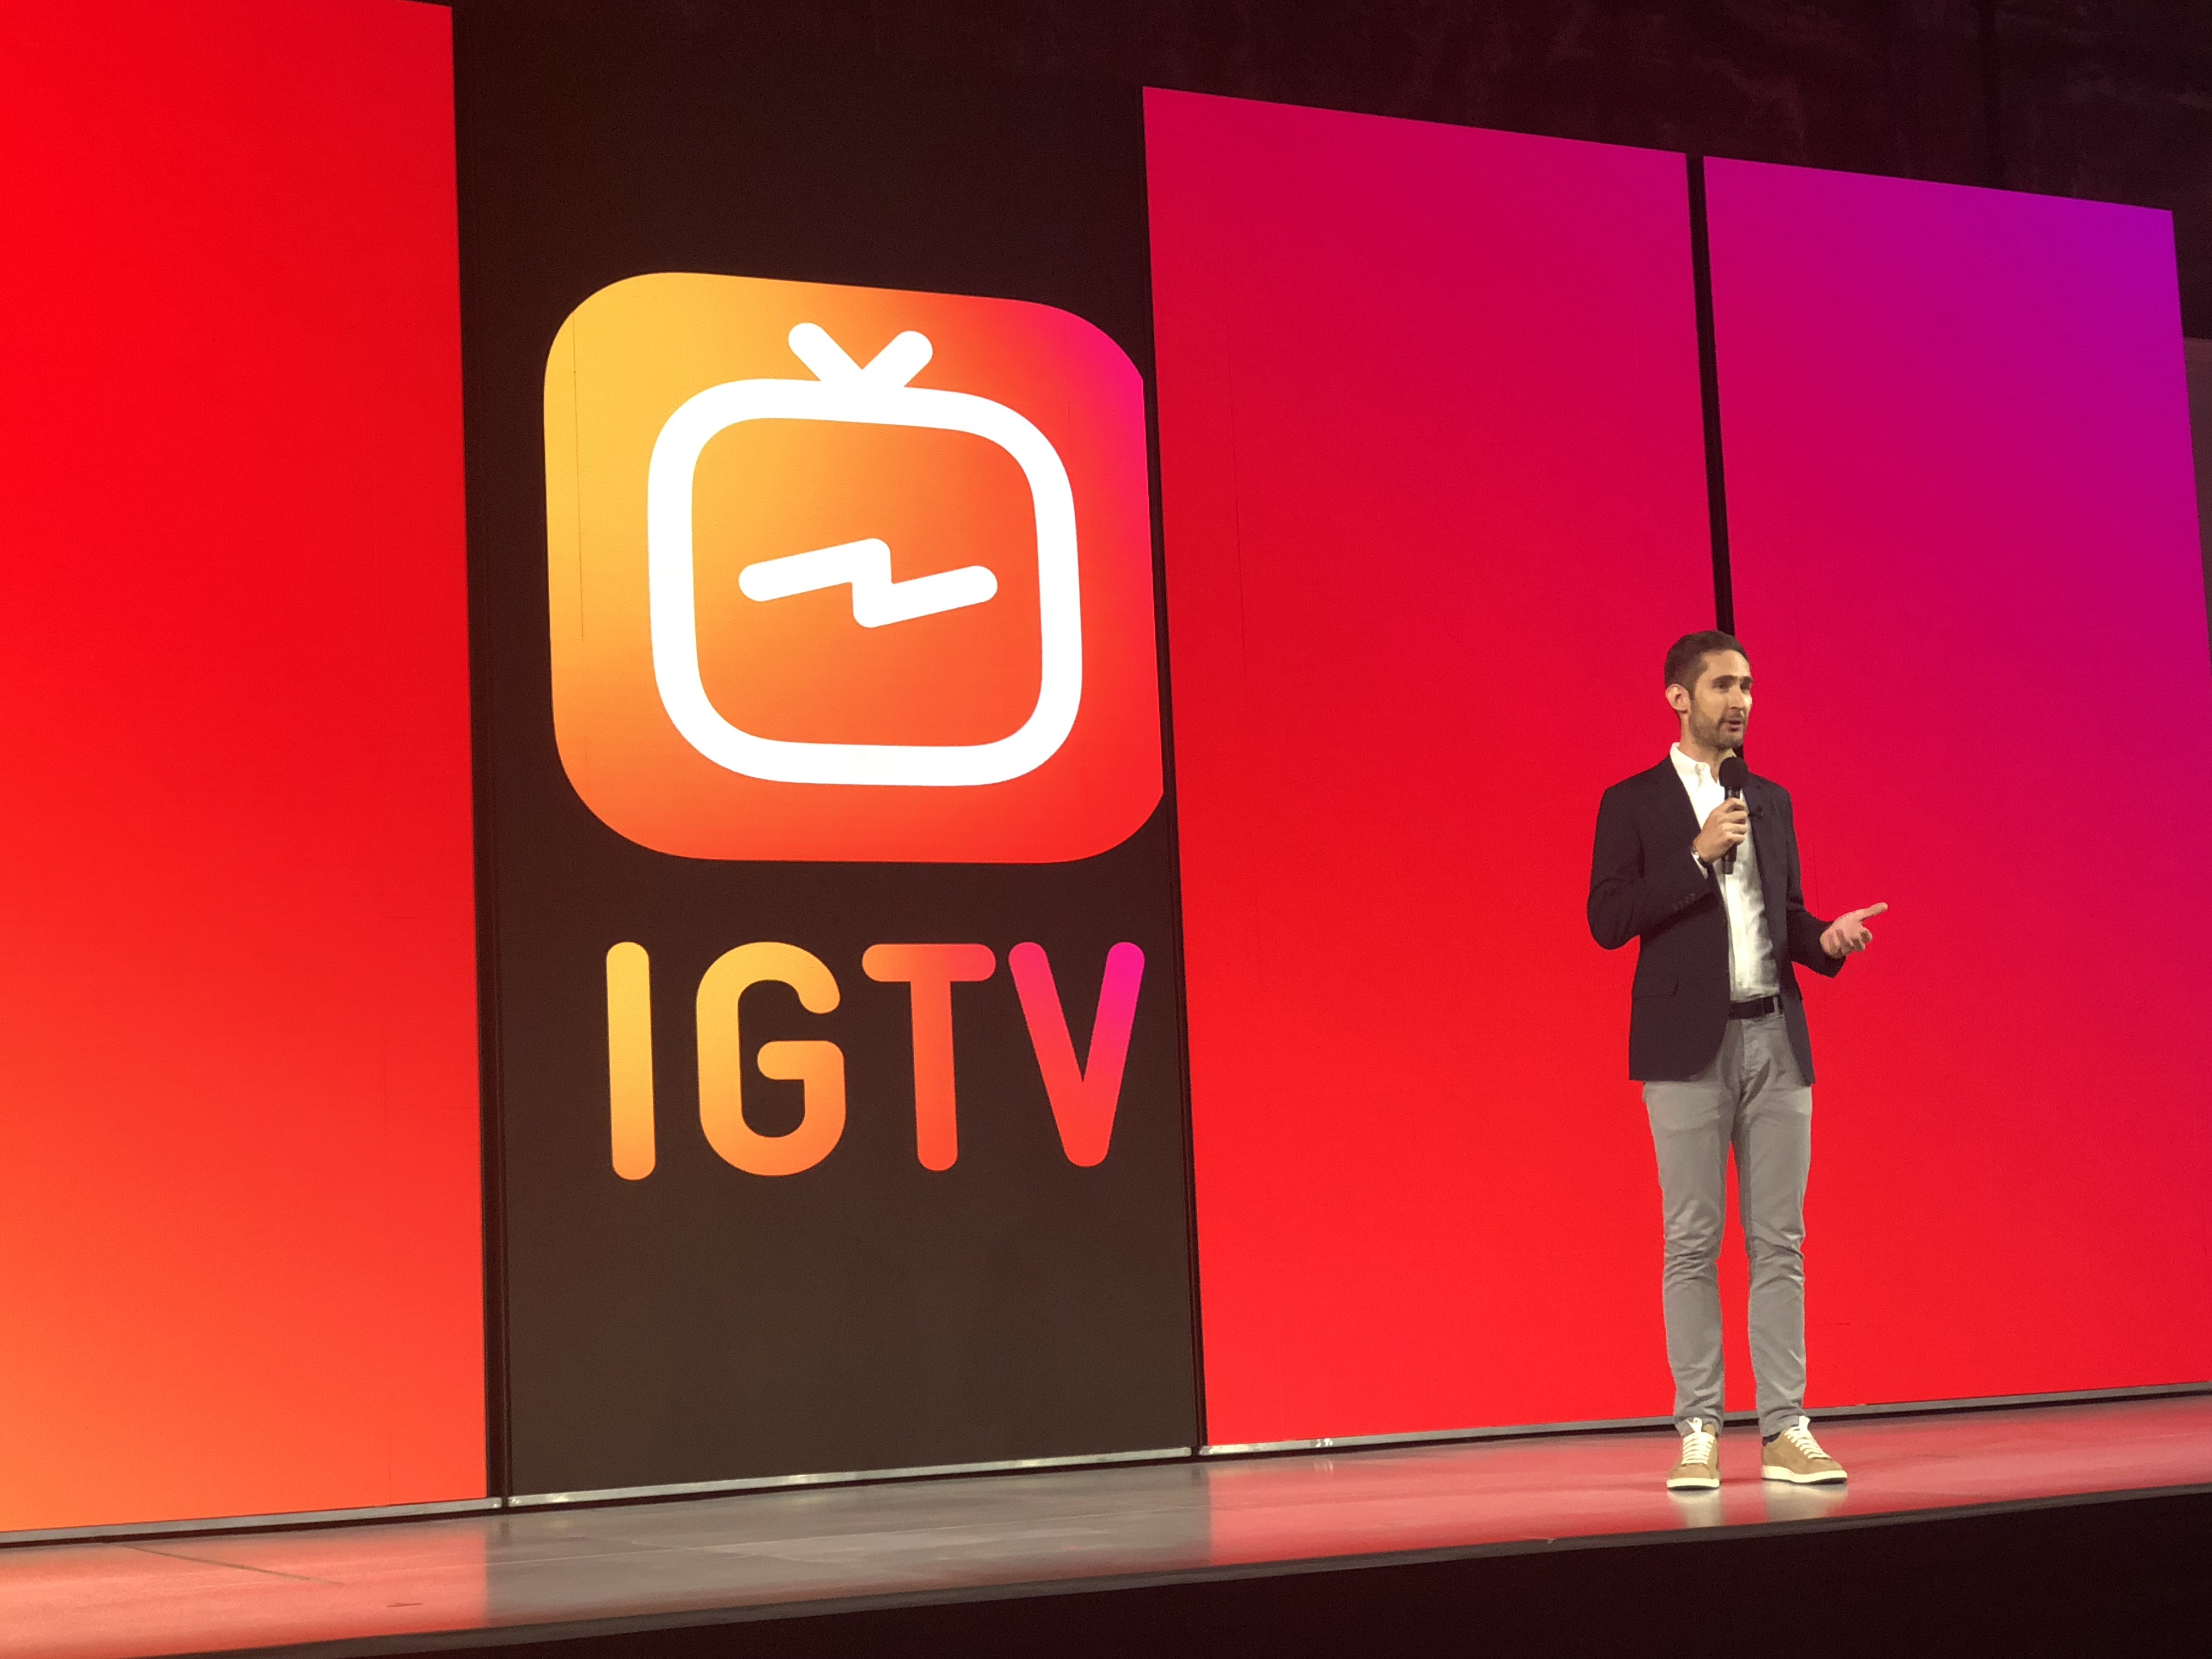 Instagram rivals YouTube, unveils 'IGTV' mobile app for hour-long videos